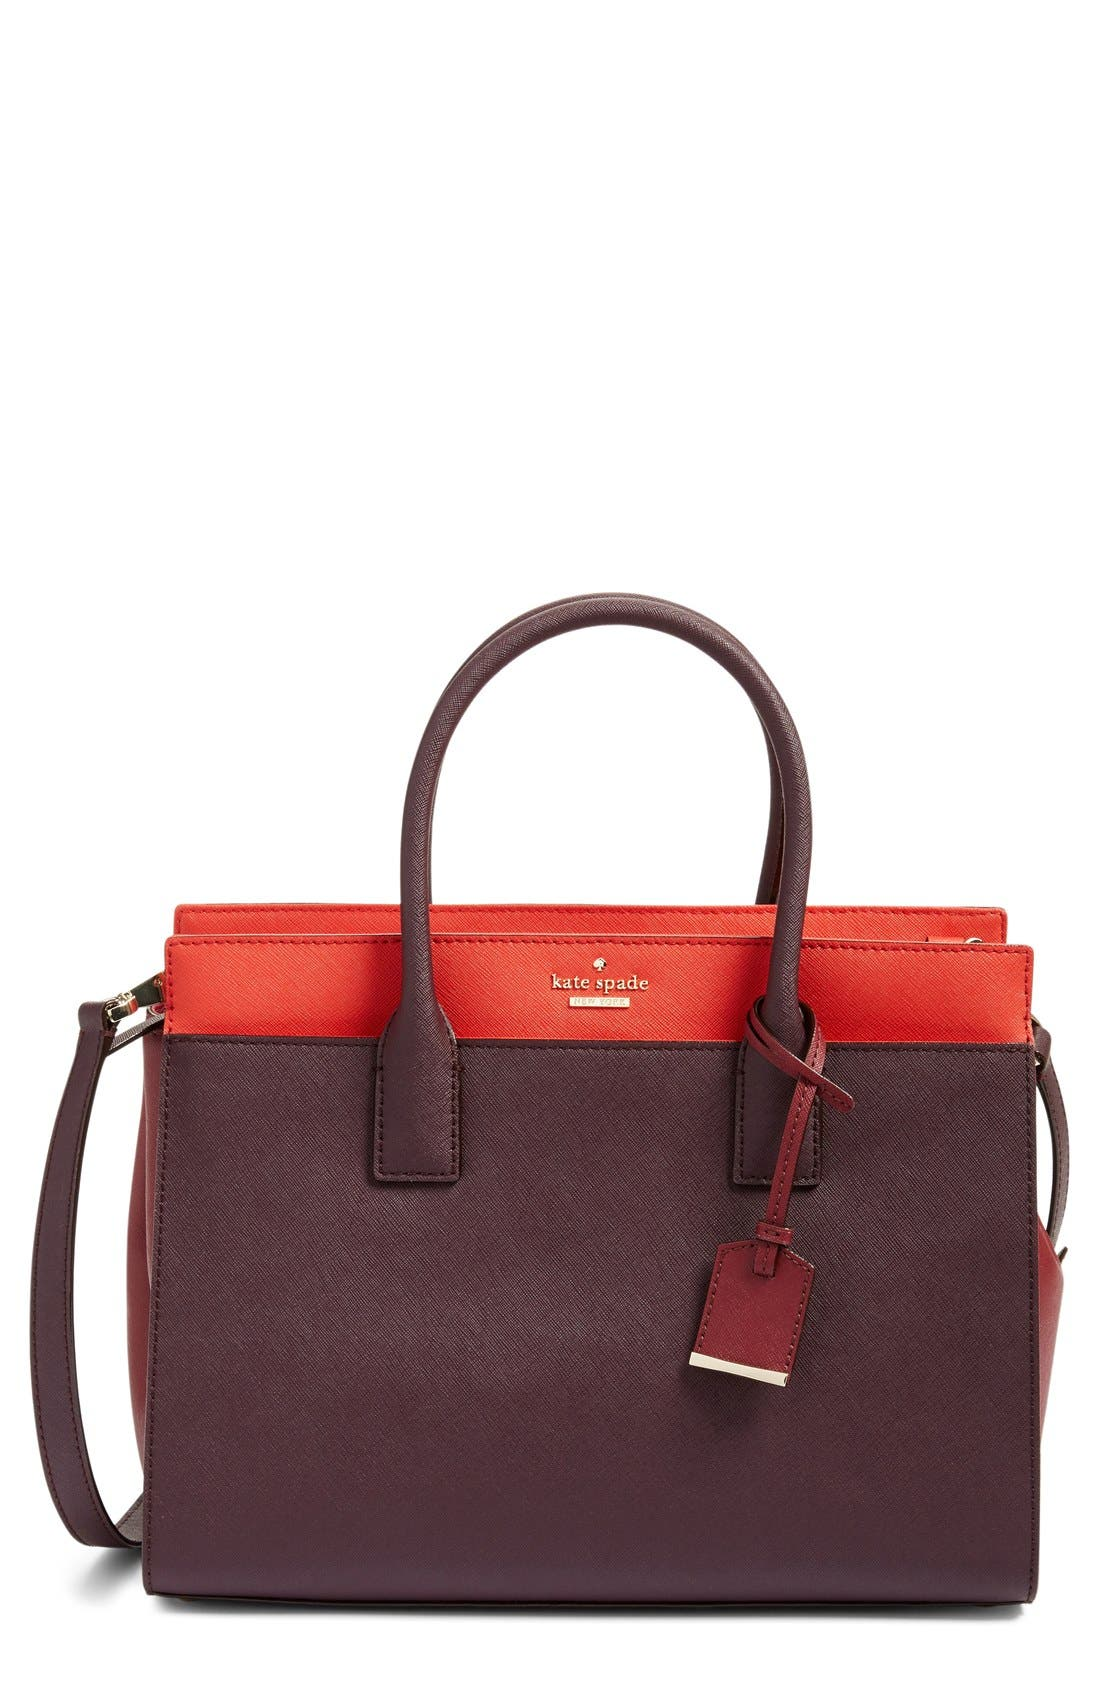 cameron street - candace leather satchel,                             Main thumbnail 11, color,